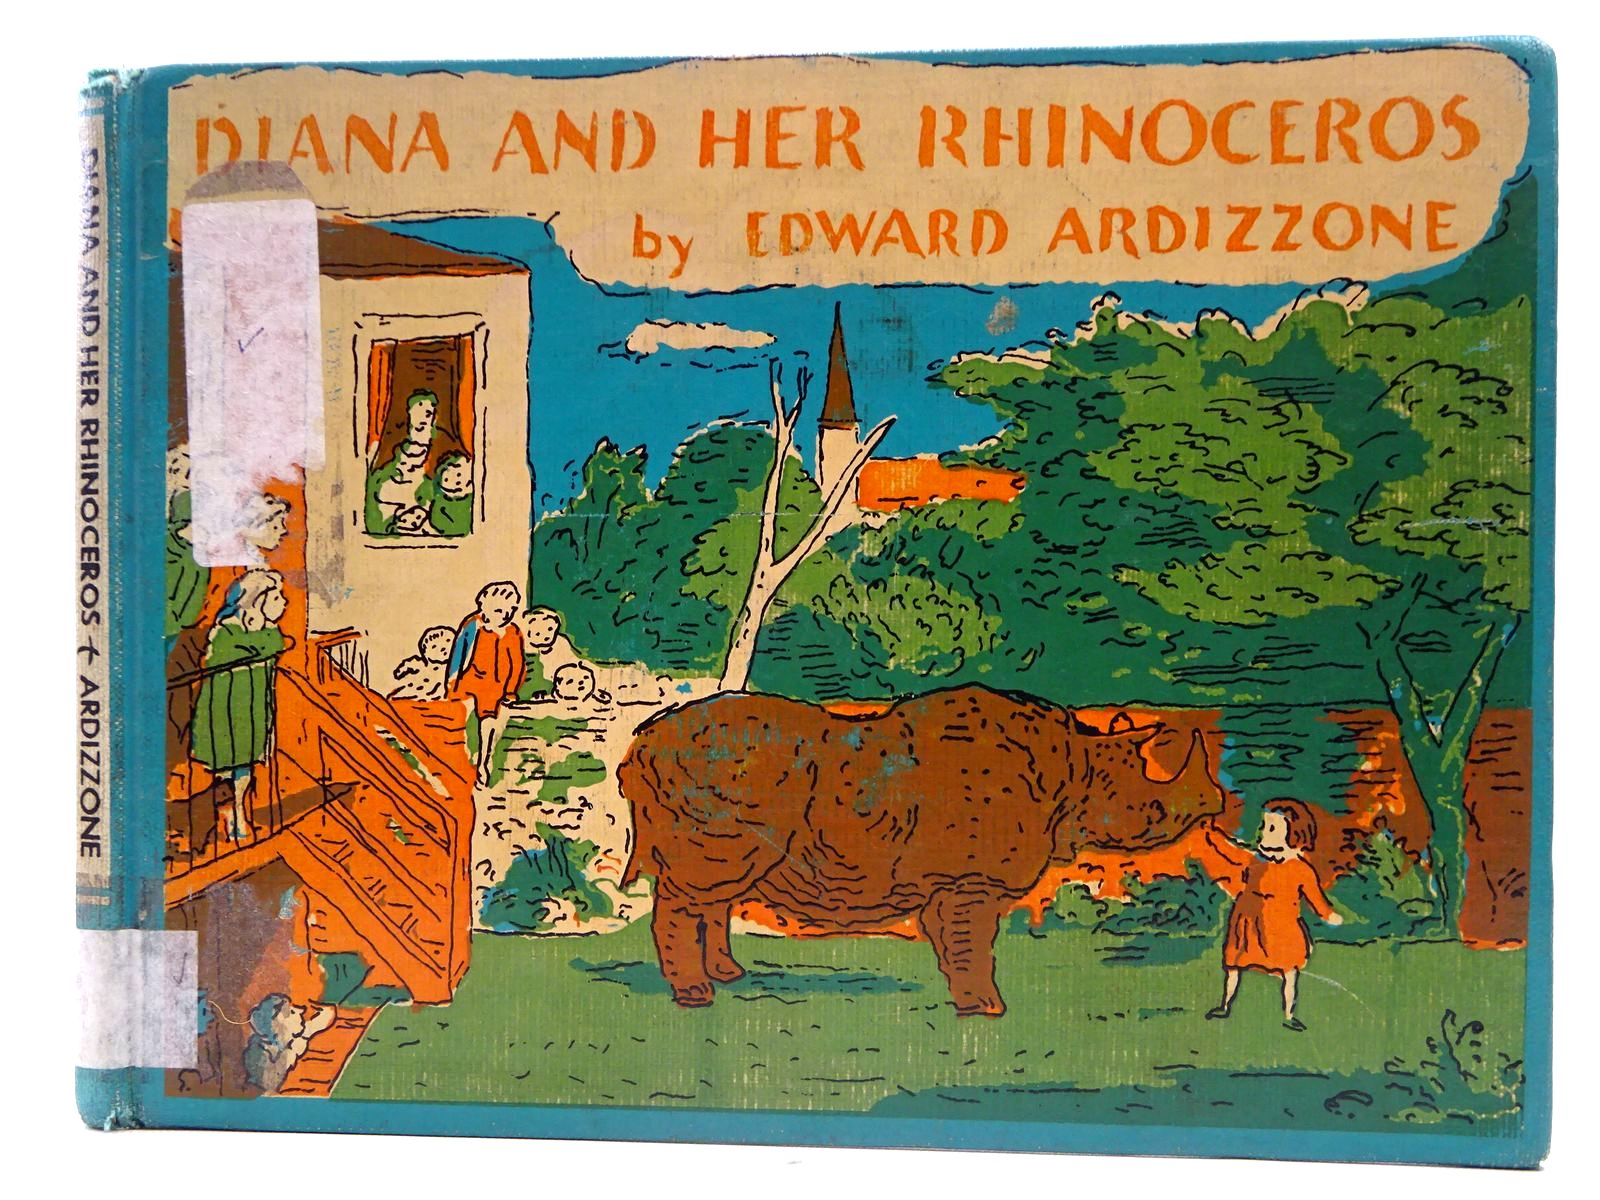 Photo of DIANA AND HER RHINOCEROS written by Ardizzone, Edward illustrated by Ardizzone, Edward published by Henry Z. Walck Inc. (STOCK CODE: 2128466)  for sale by Stella & Rose's Books